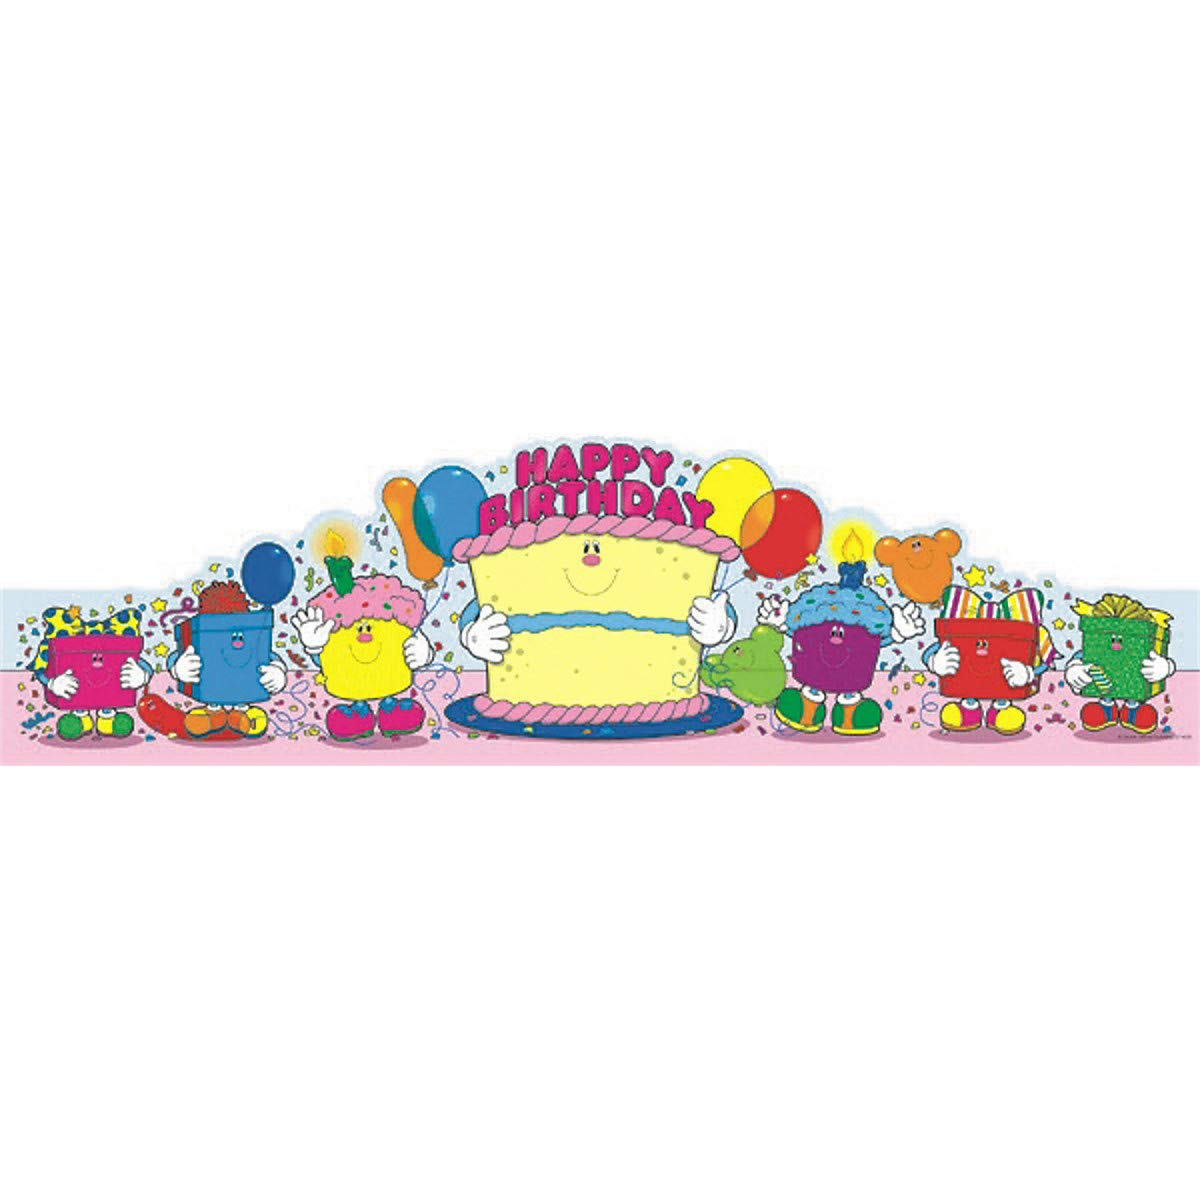 Carson Dellosa Publishing Company CD0232 Birthday Crowns (CPBCD0232) Category: Party Decorations and Party Supplies